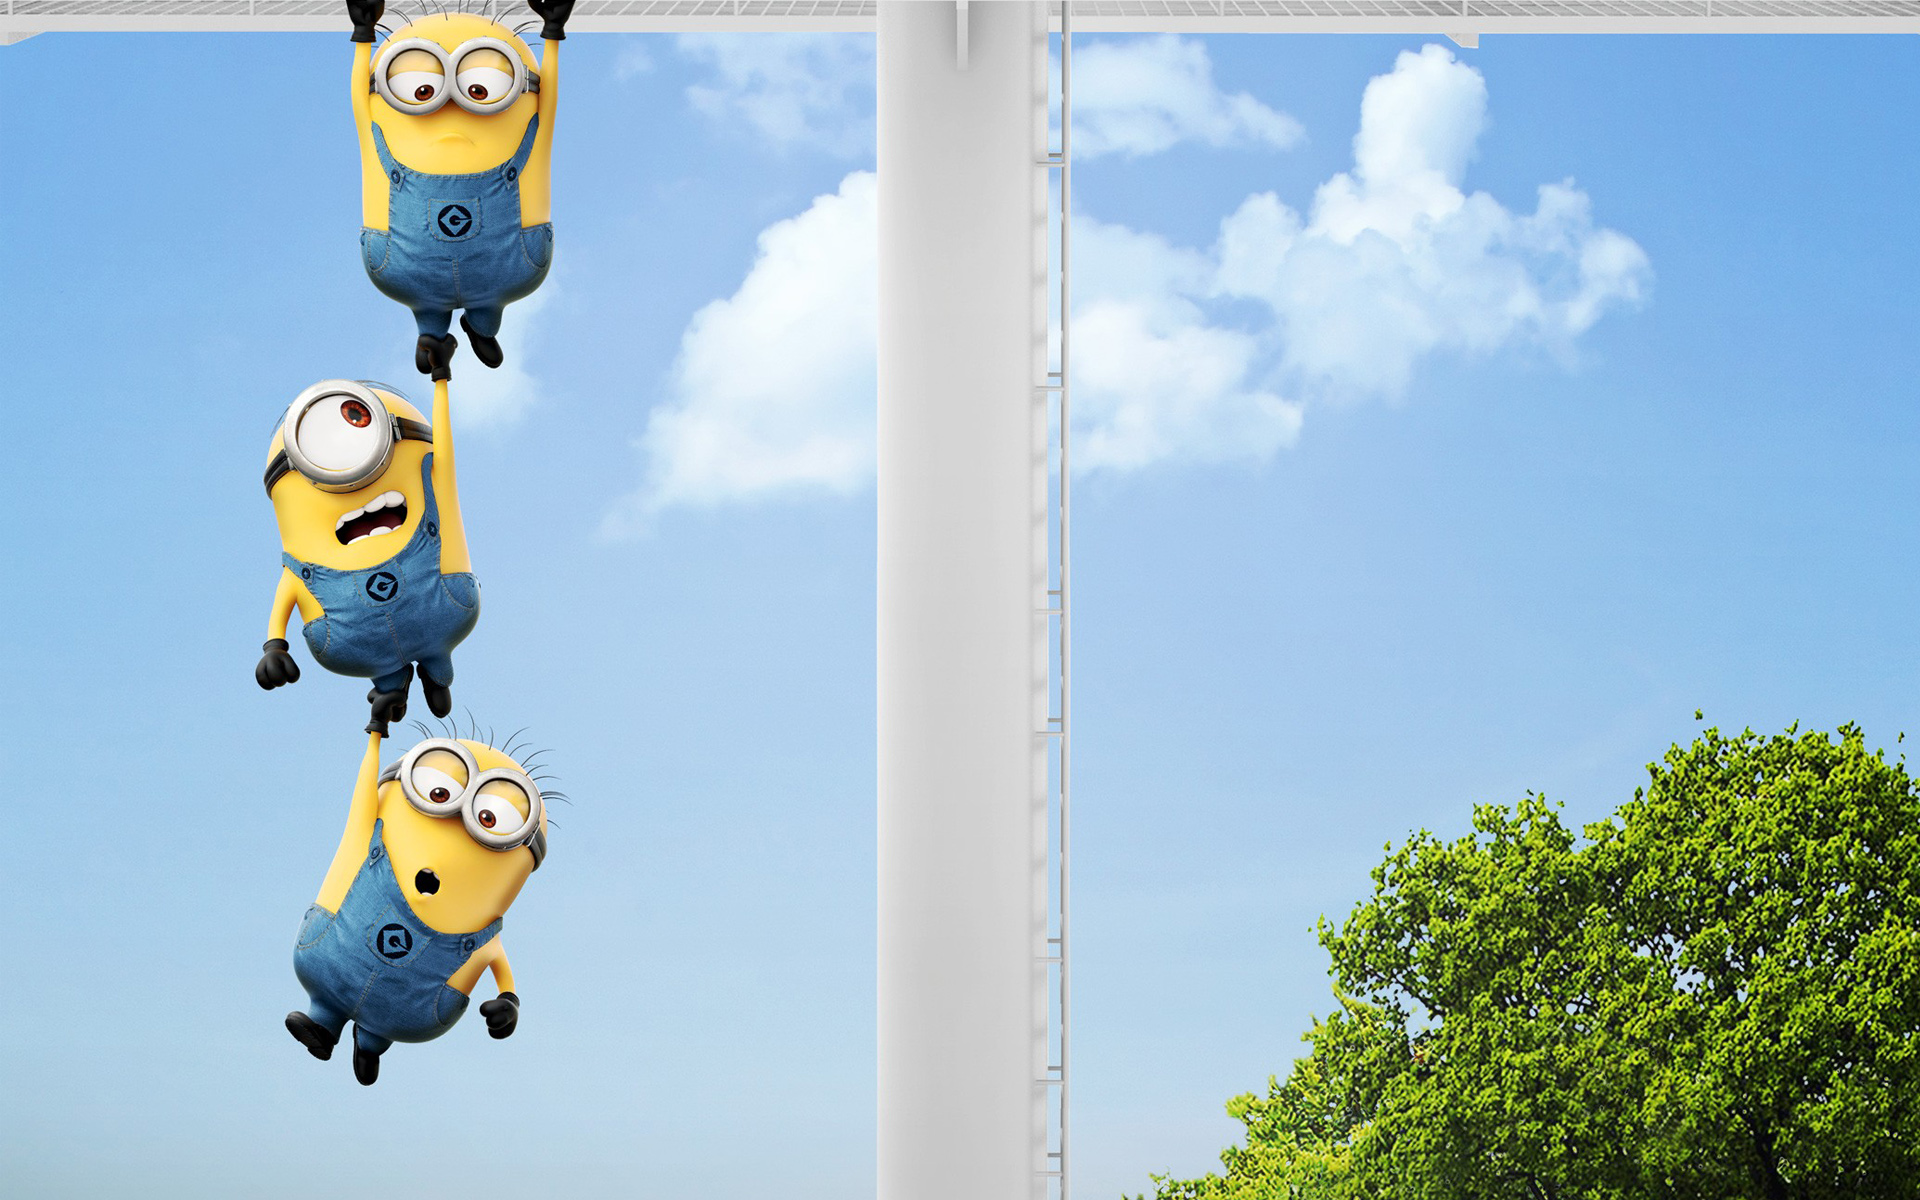 Funny minion wallpapers wallpapersafari - Despicable me minion screensaver ...